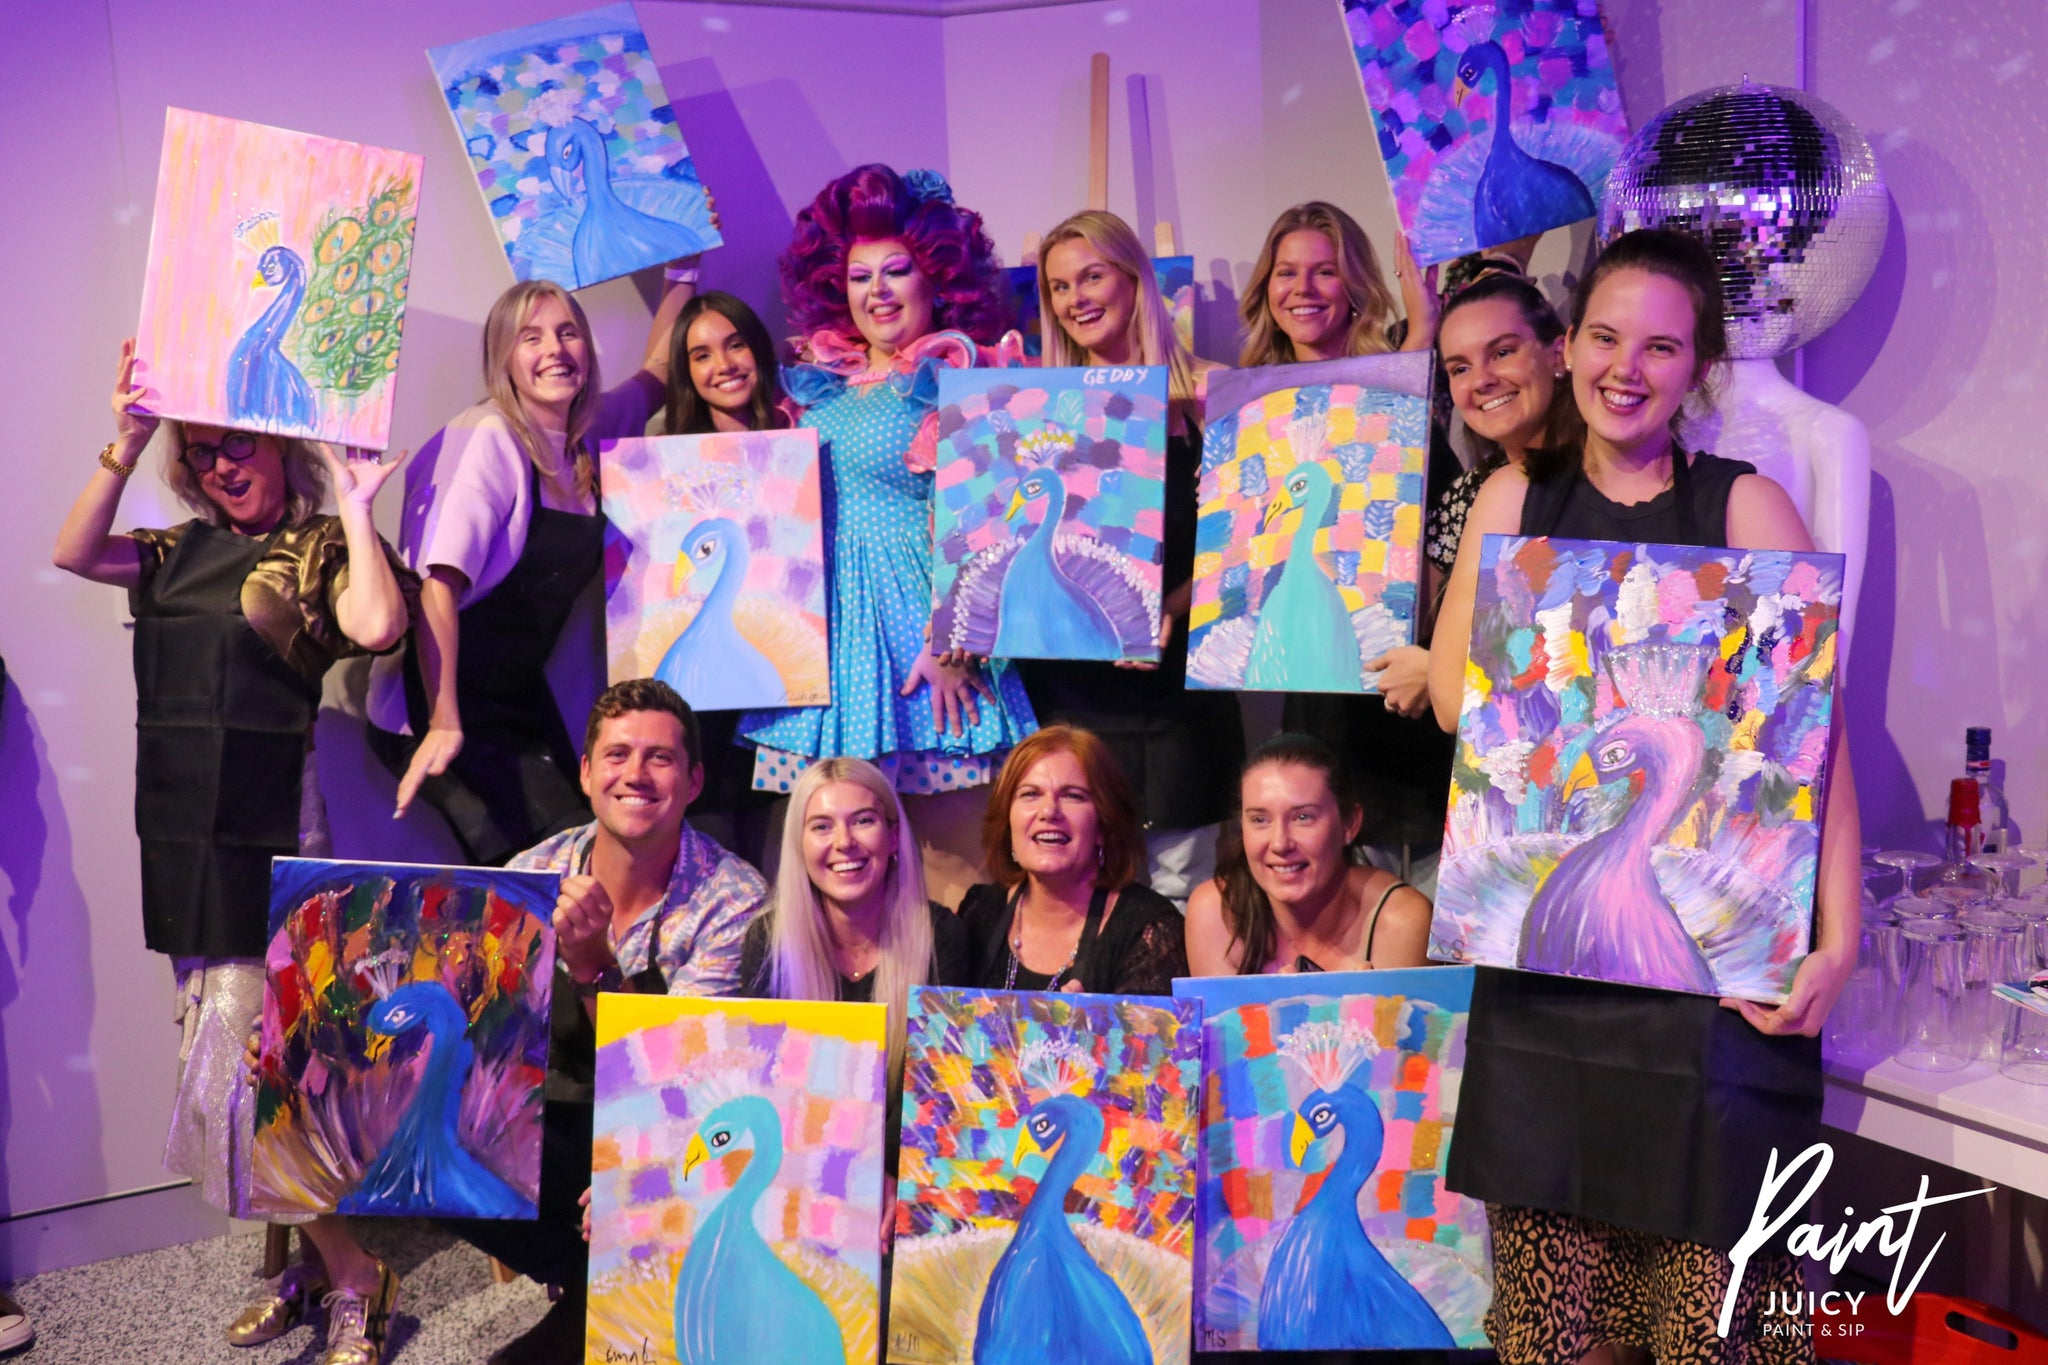 Paint Juicy Paint and Sip Gold Coast